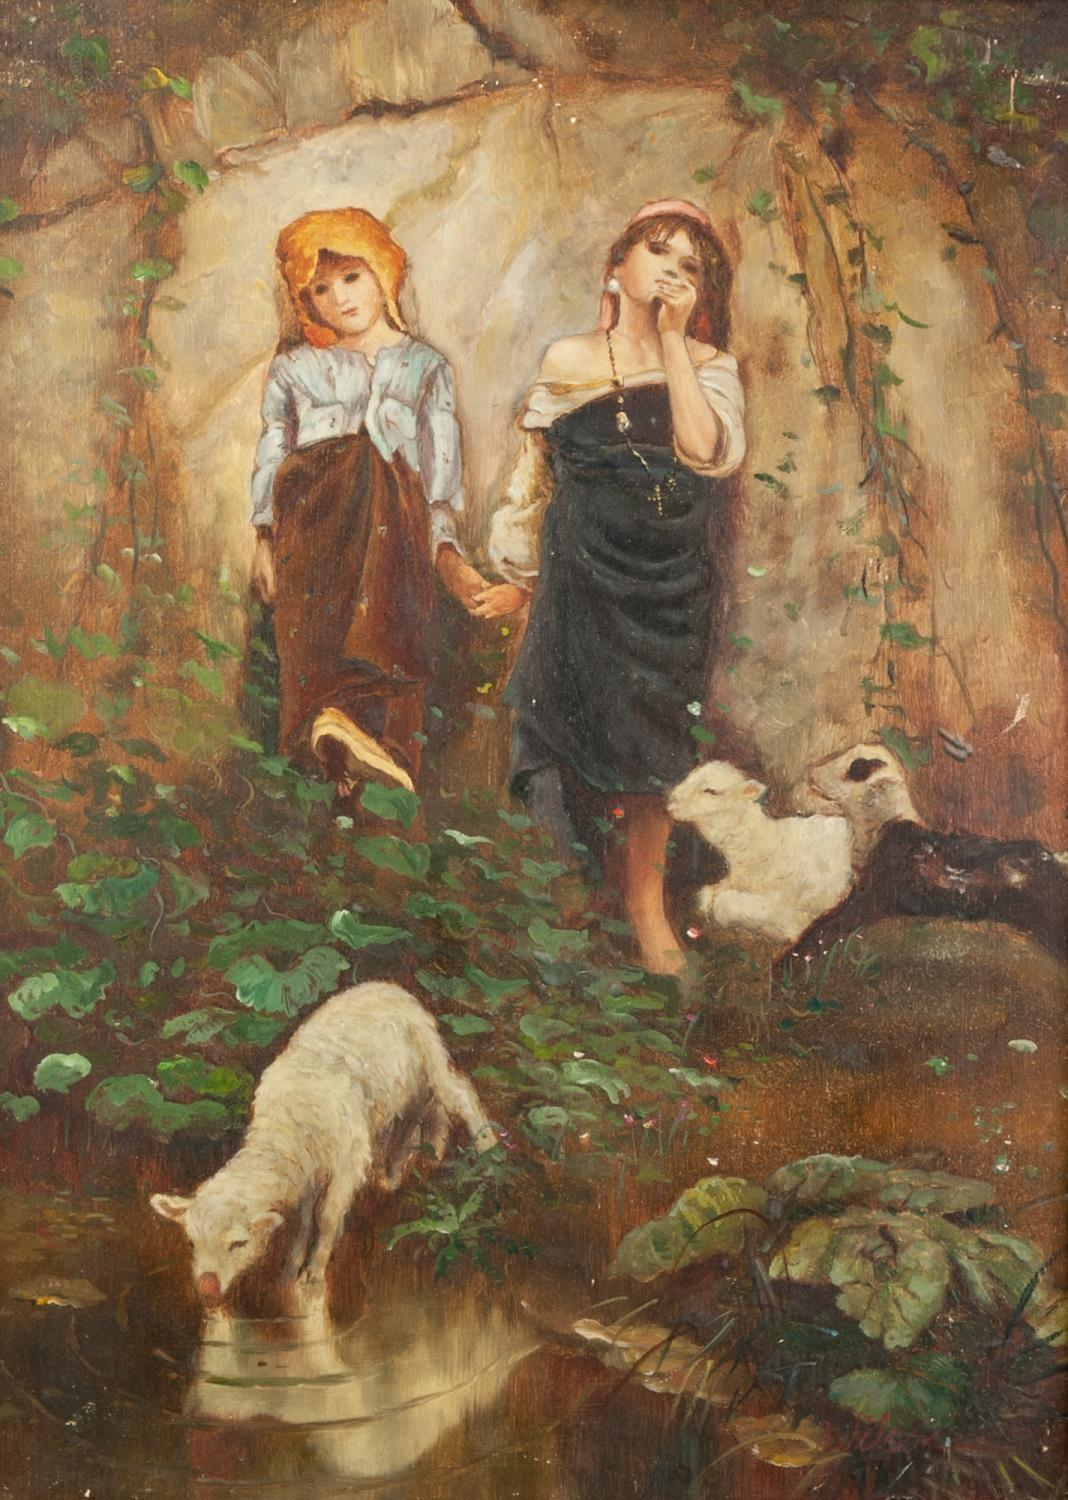 FROM THE ORIGINAL, MID 20th CENTURY OIL PAINTING ON PANEL Two children by a pond with lambs, one